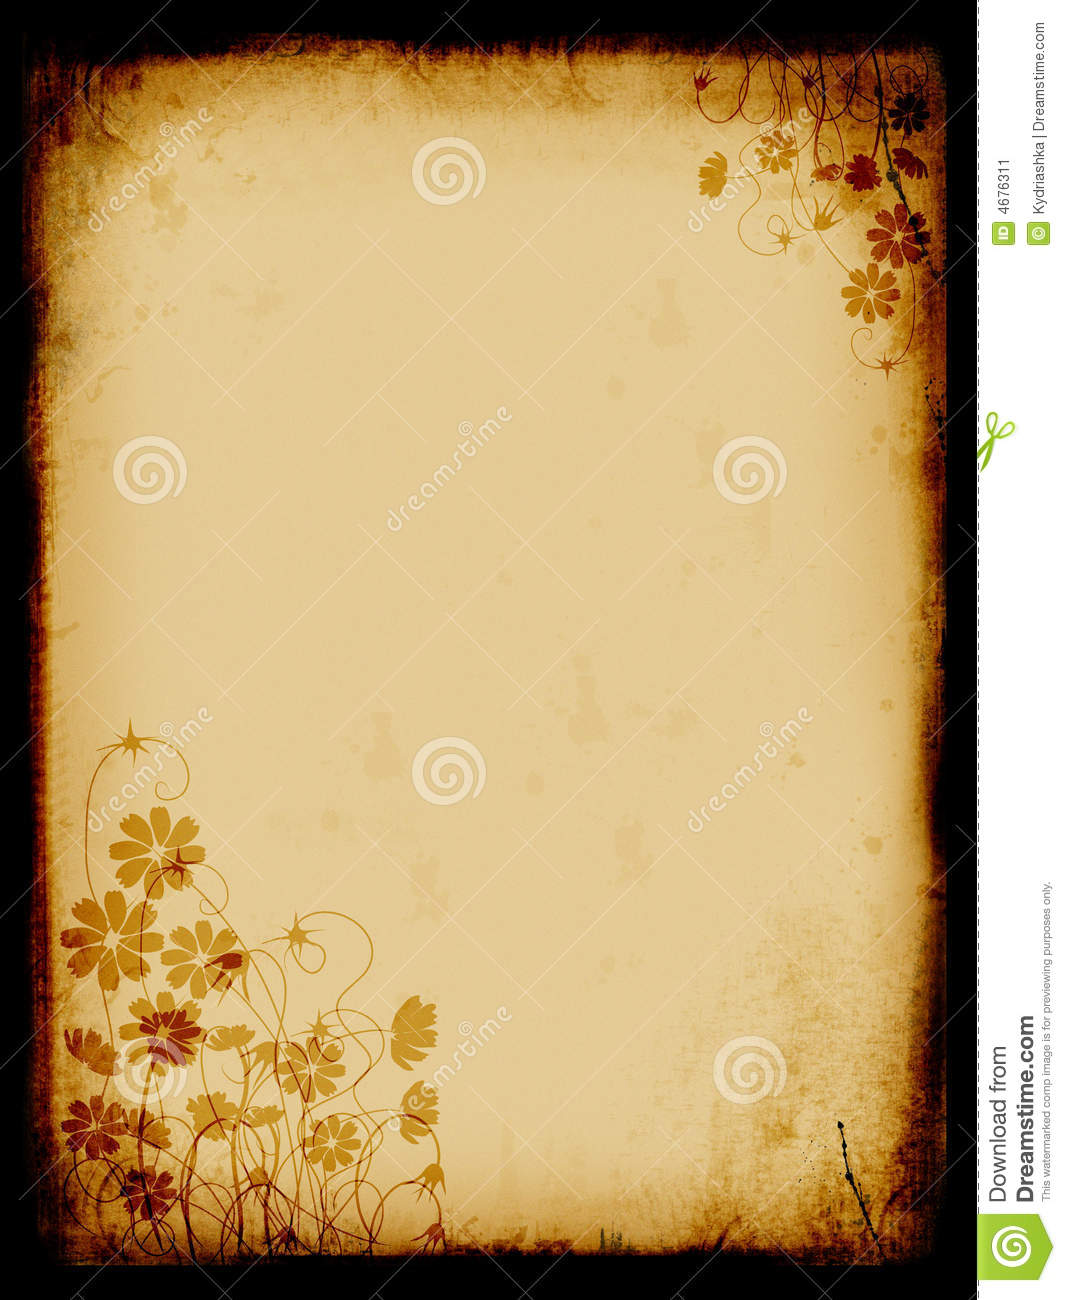 Free Grunge Vector, Textures, Backgrounds, Photoshop Brushes